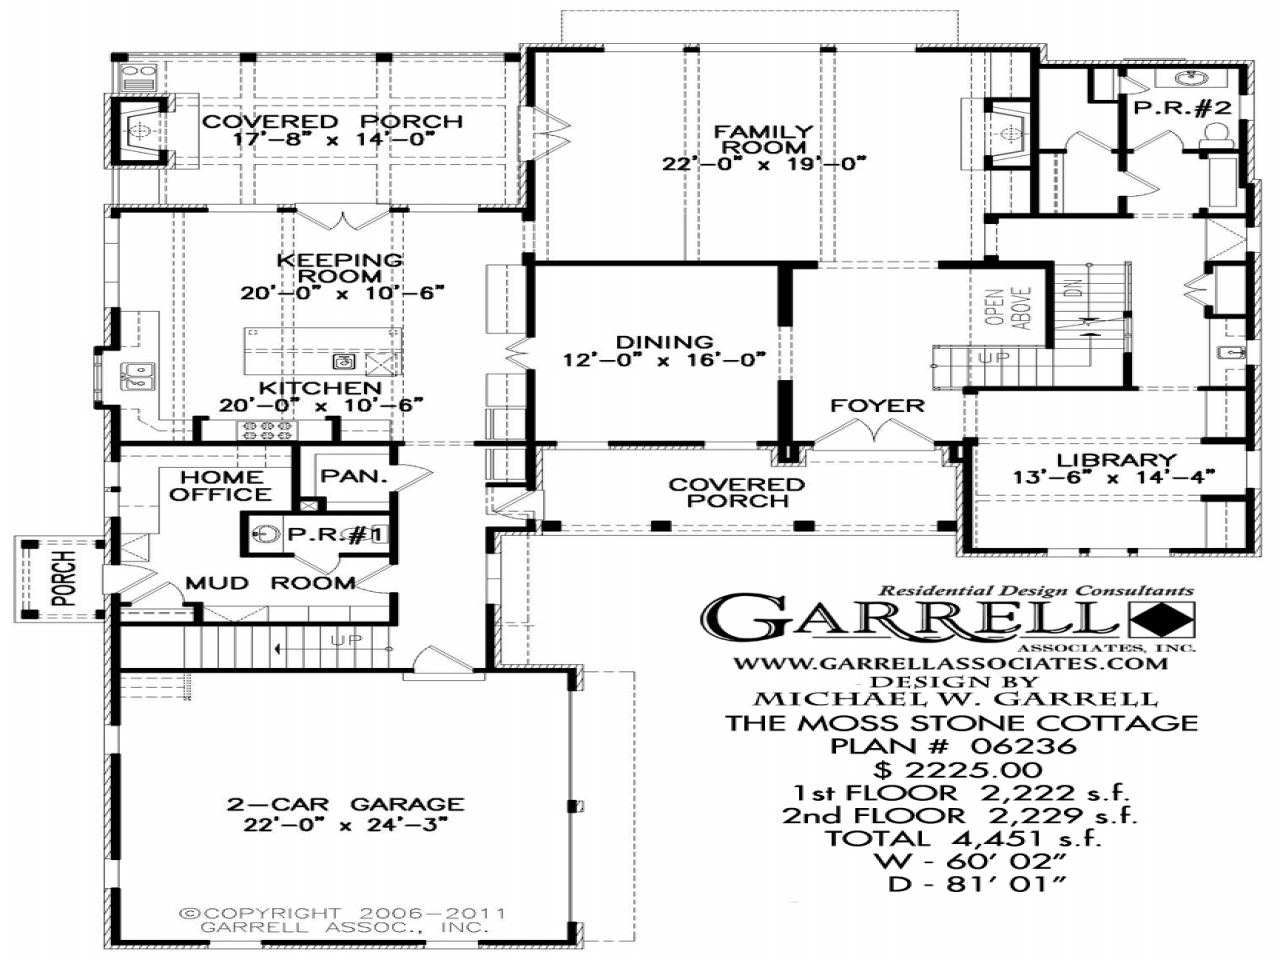 English stone cottage house plans small stone cottages for Small stone cottage floor plans